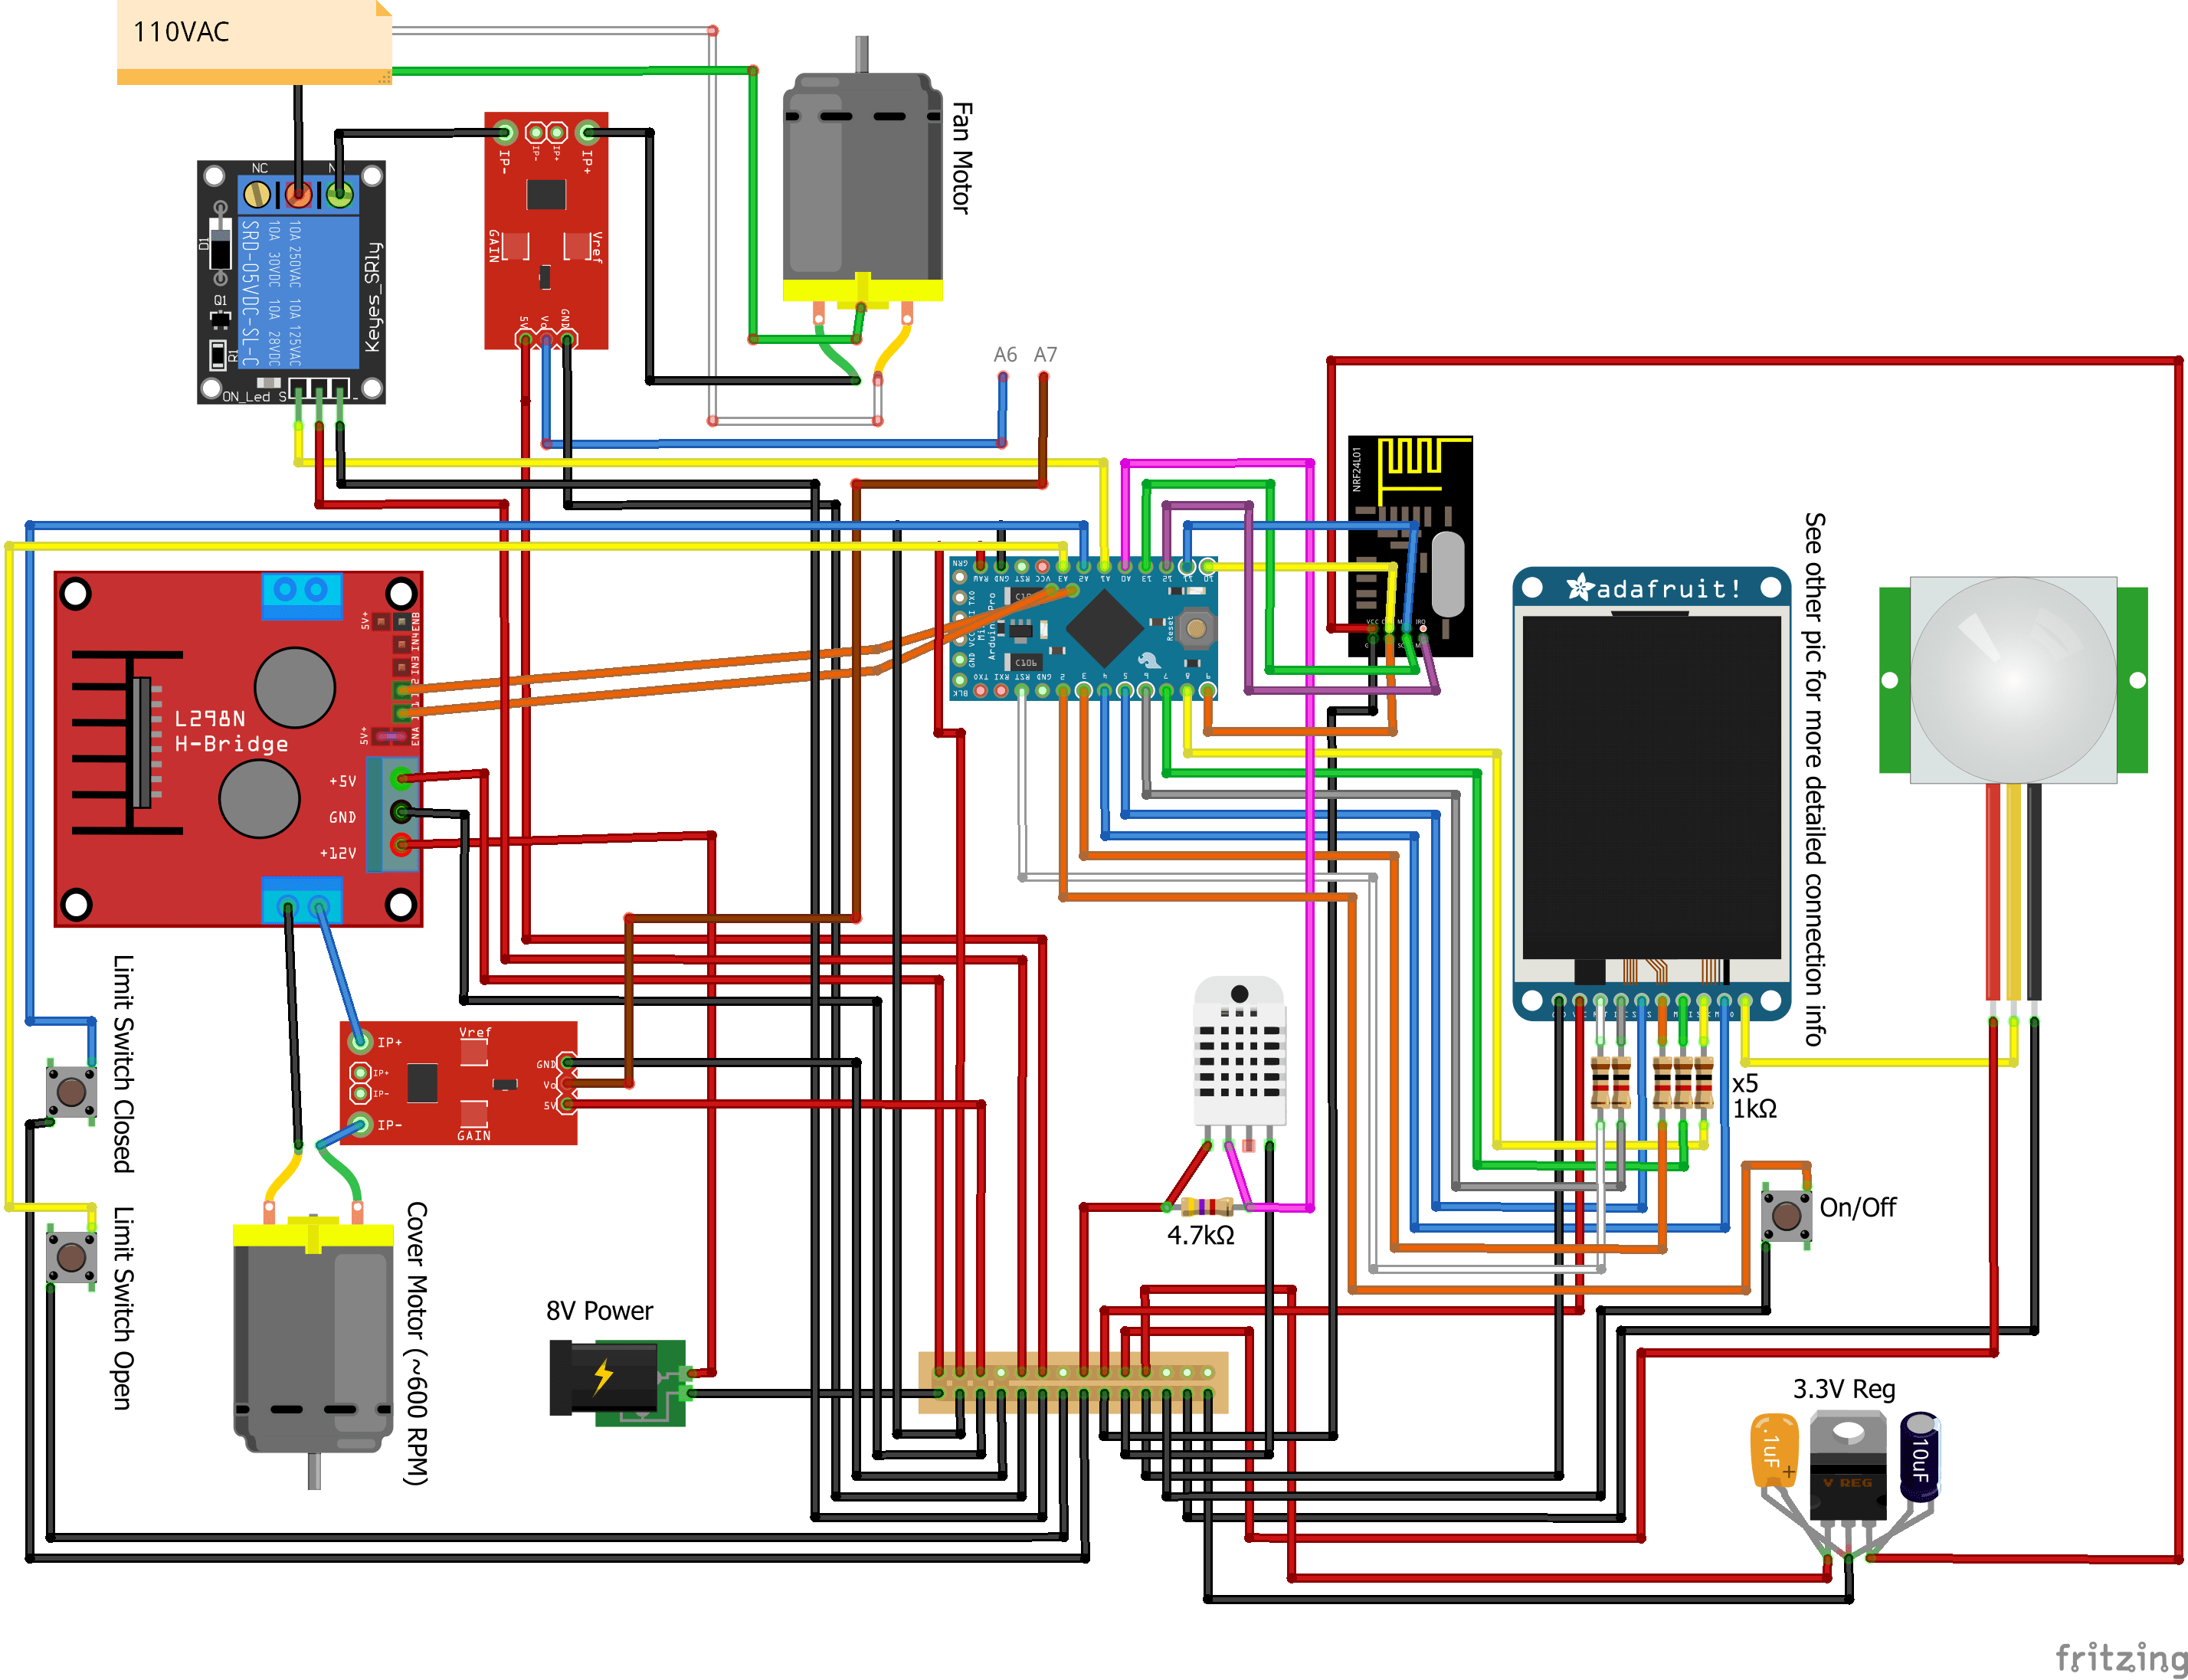 Fritzing Whole House Fan Wiring?resize\\\\\\\\\\\\\\\\\\\\\\\\\\\\\\\\\\\\\\\\\\\\\\\=665%2C511\\\\\\\\\\\\\\\\\\\\\\\\\\\\\\\\\\\\\\\\\\\\\\\&ssl\\\\\\\\\\\\\\\\\\\\\\\\\\\\\\\\\\\\\\\\\\\\\\\=1 clayton 1600g wood furnace wiring diagrams wiring diagrams clayton wood furnace wiring diagram at mifinder.co